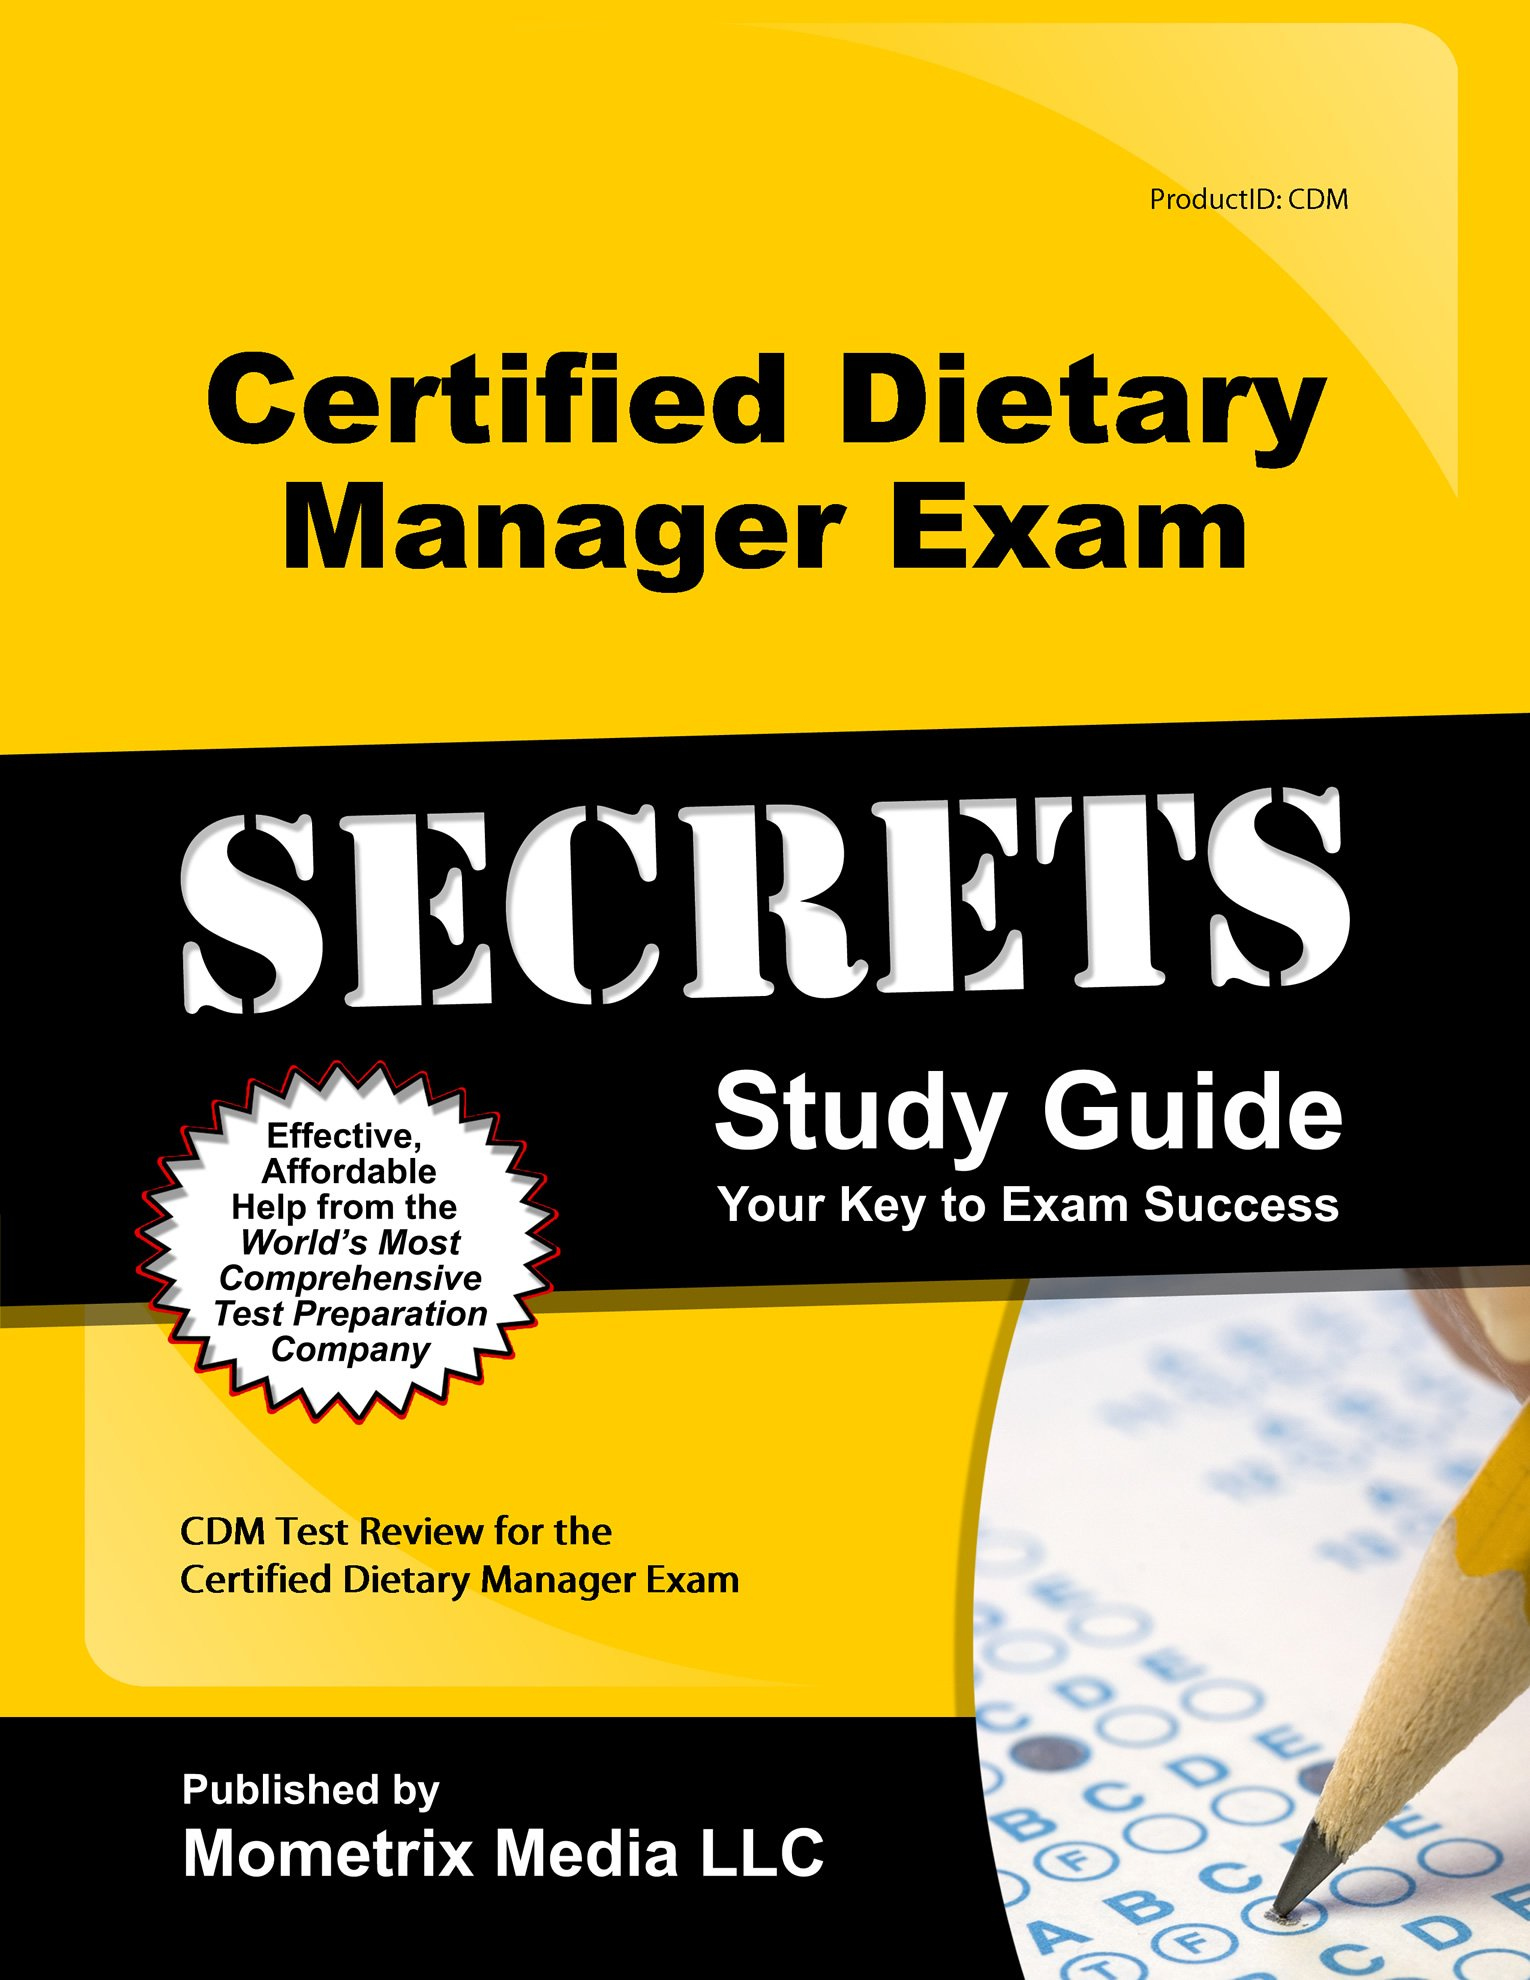 Amazon Buy Certified Dietary Manager Exam Secrets Study Guide